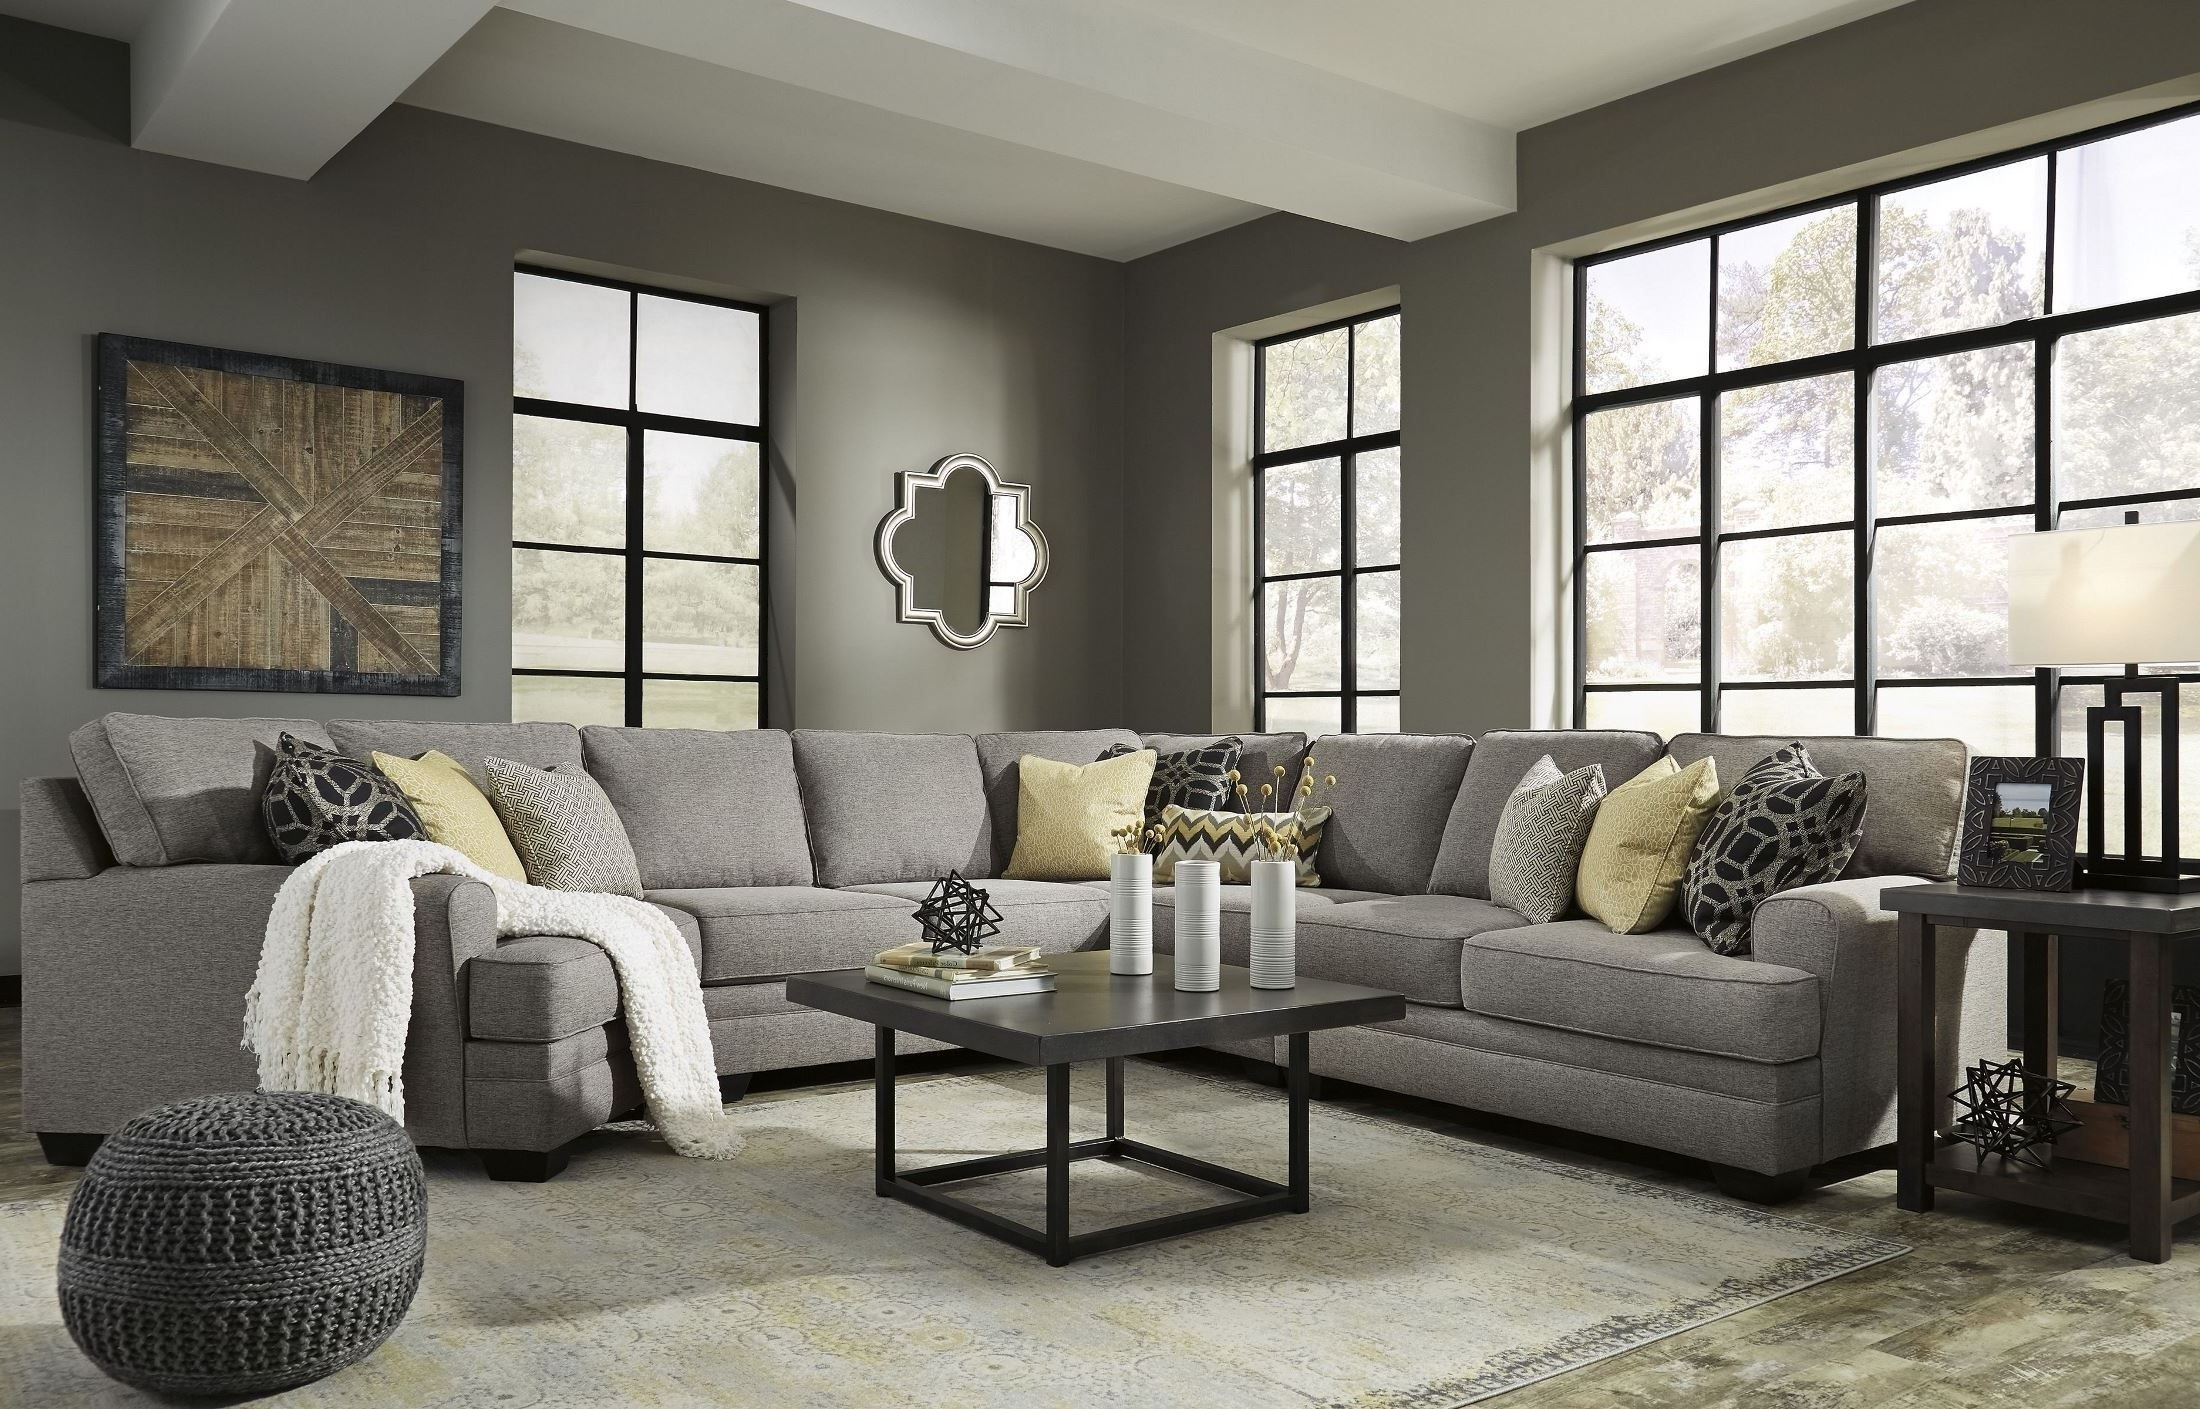 Cresson Pewter Laf Cuddler Sectional From Ashley | Coleman Furniture With Regard To Aspen 2 Piece Sleeper Sectionals With Raf Chaise (Image 10 of 25)